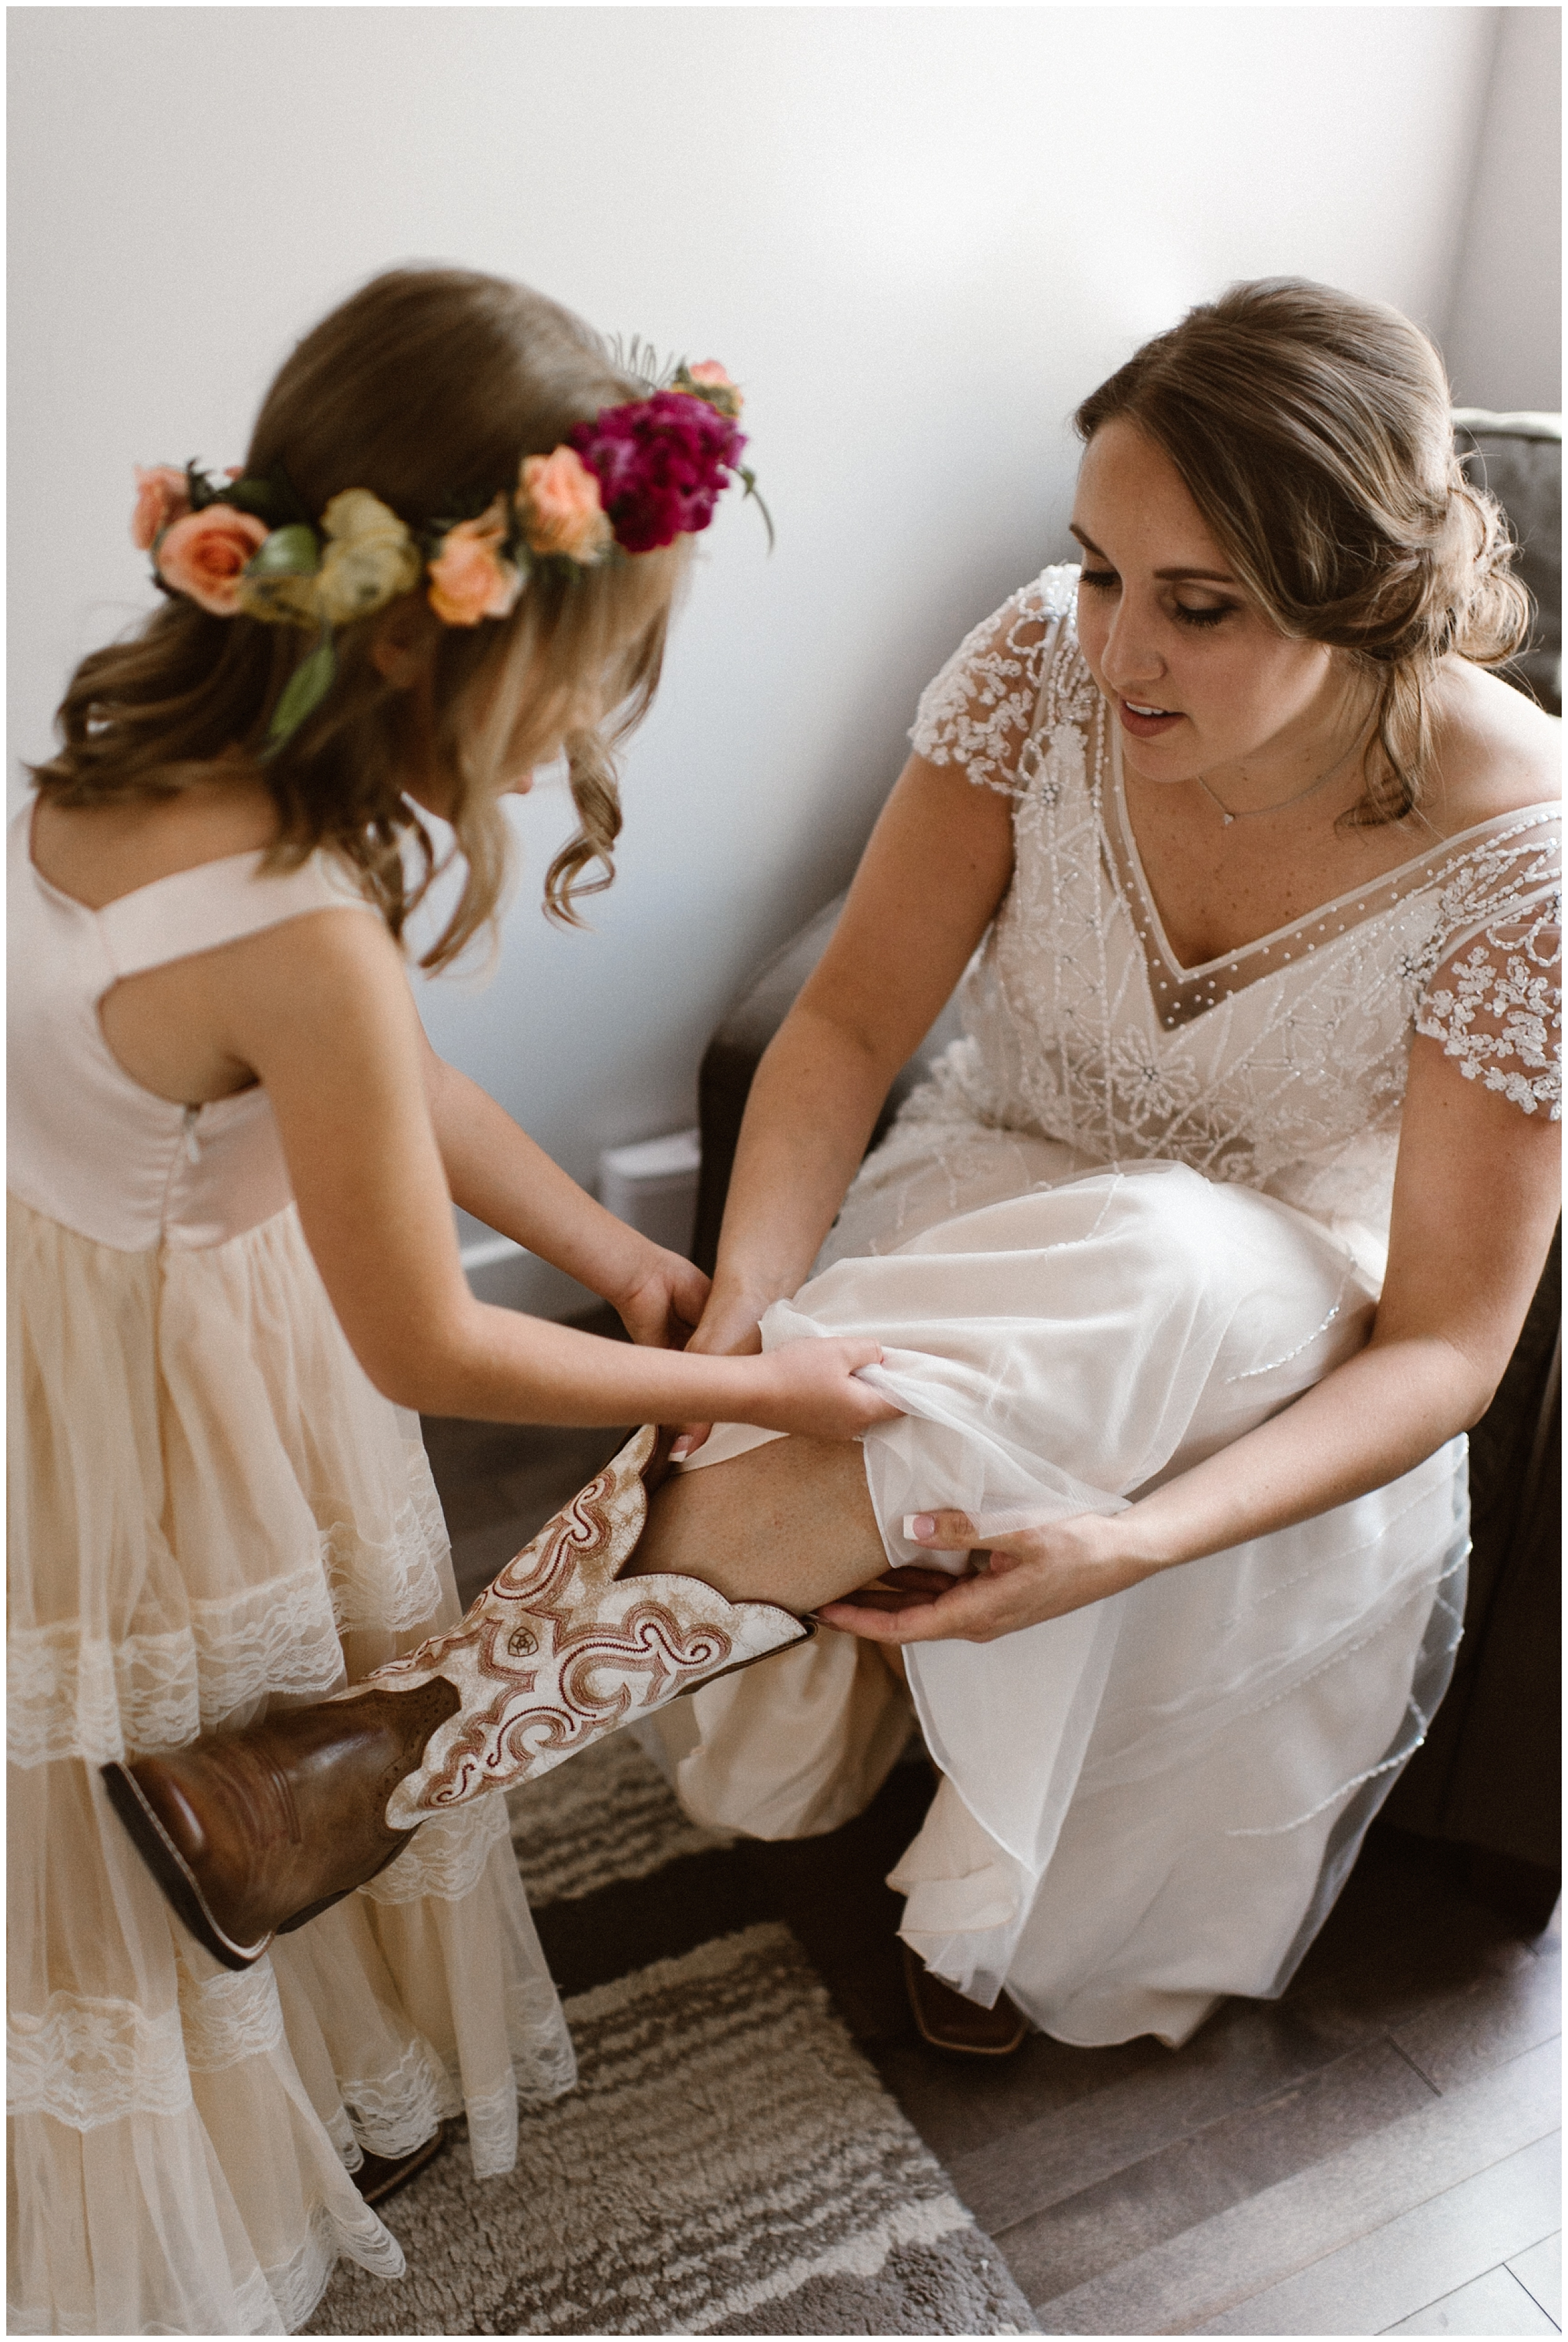 A yound child helps her mother get ready as she puts on her cowboy boots. Including your child in your elopement ceremony can happen anyway you want, even if it means just helping you get dressed up for your big day!